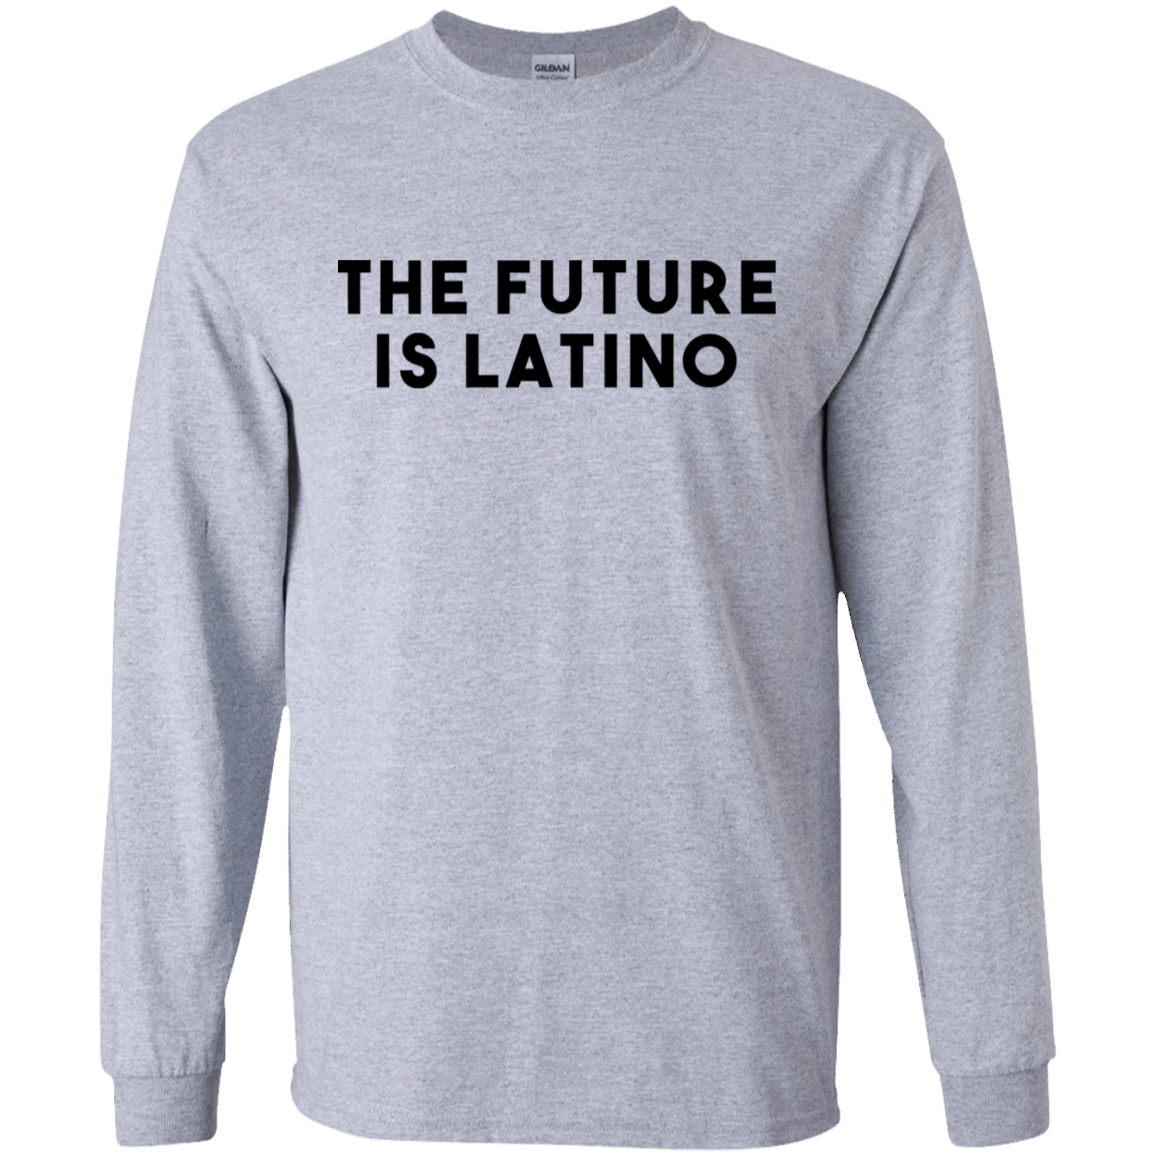 The Future Is Latino 30-188-73057005-335 - Tee Ript